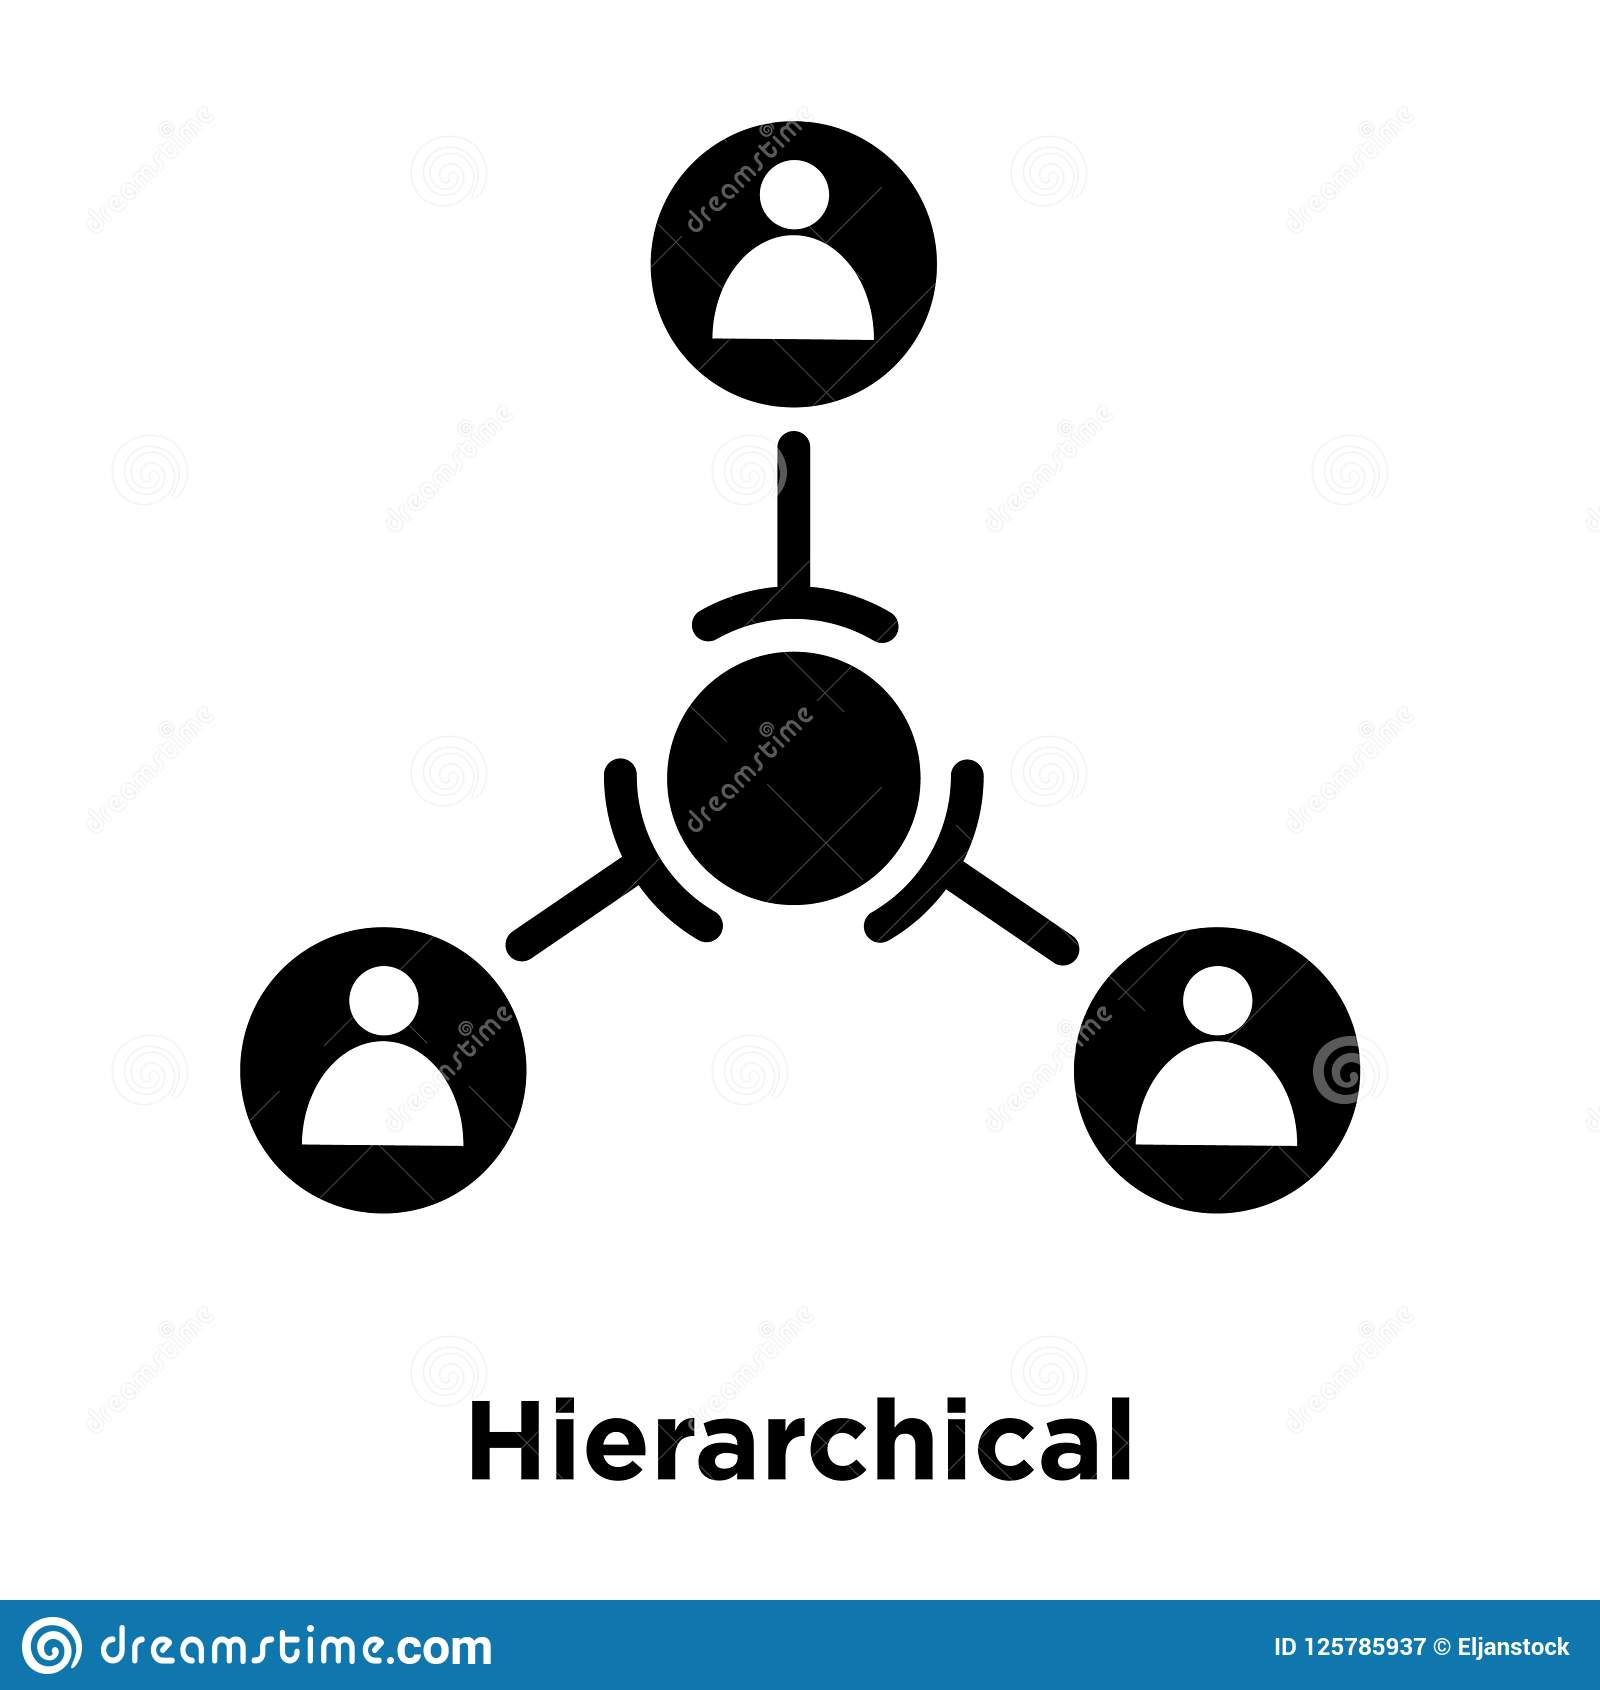 Hierarchical structure icon vector isolated on white background, logo concept of Hierarchical structure sign on transparent